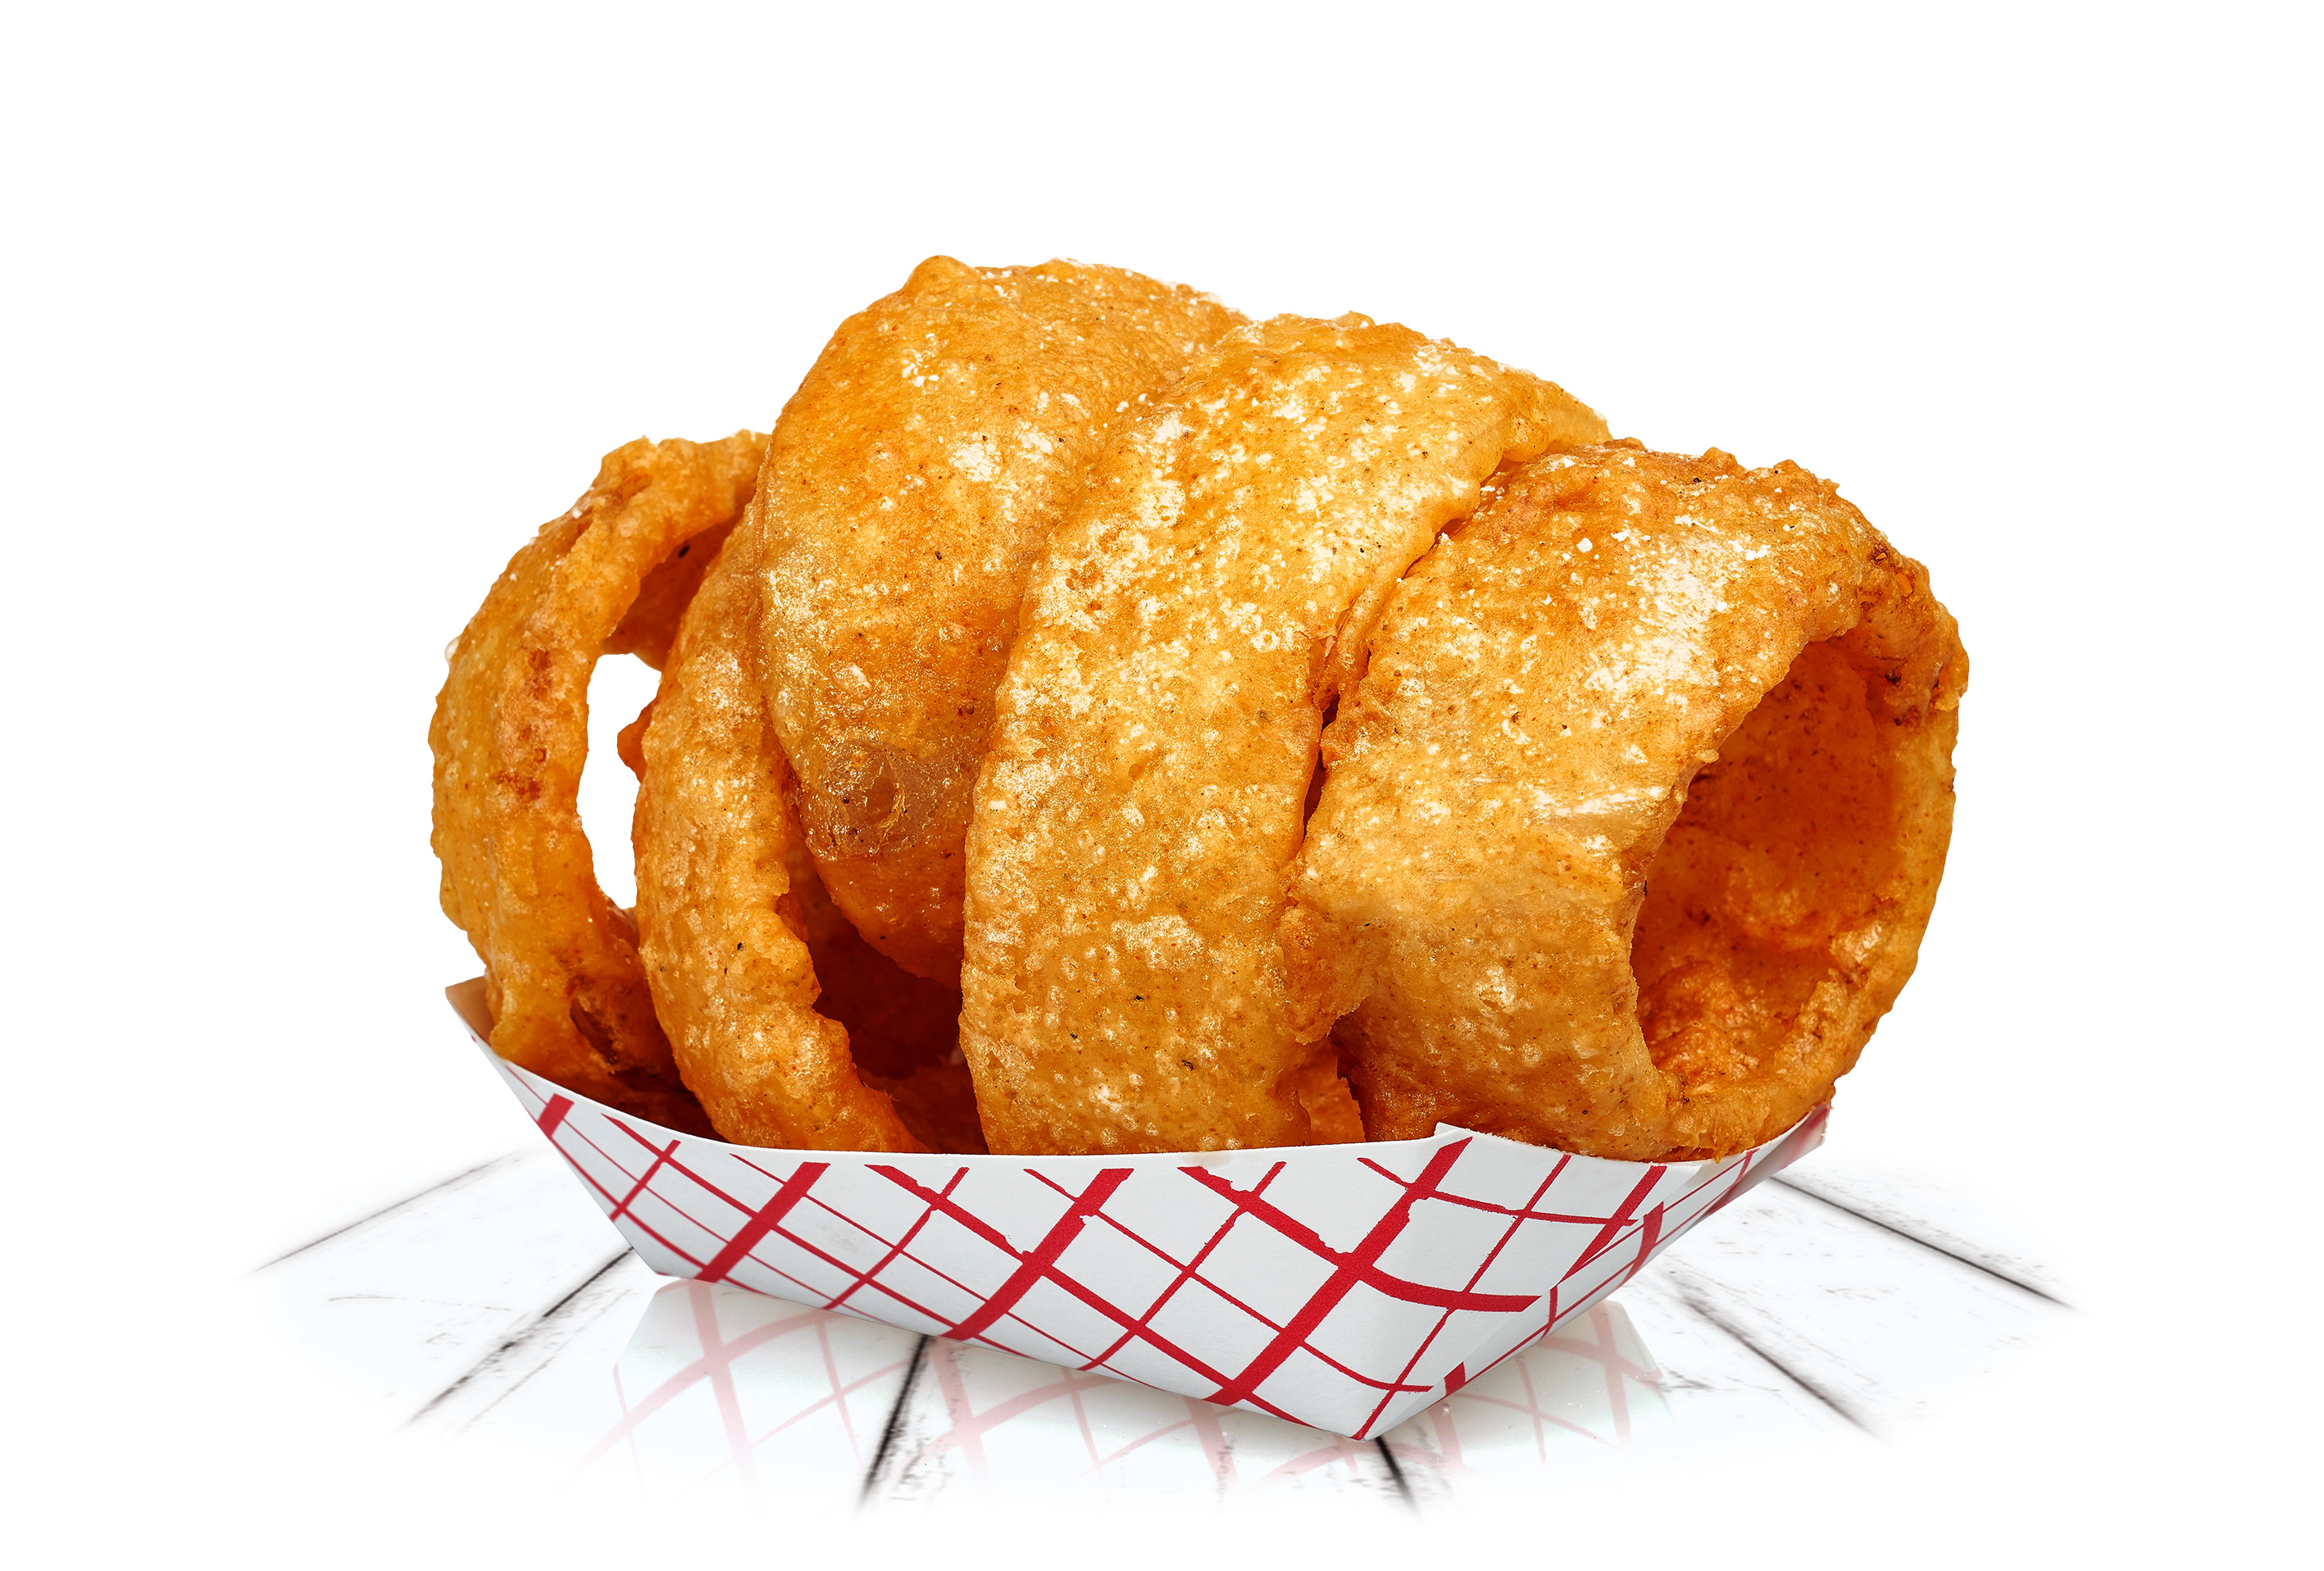 How Many Calories Is In An Onion Ring